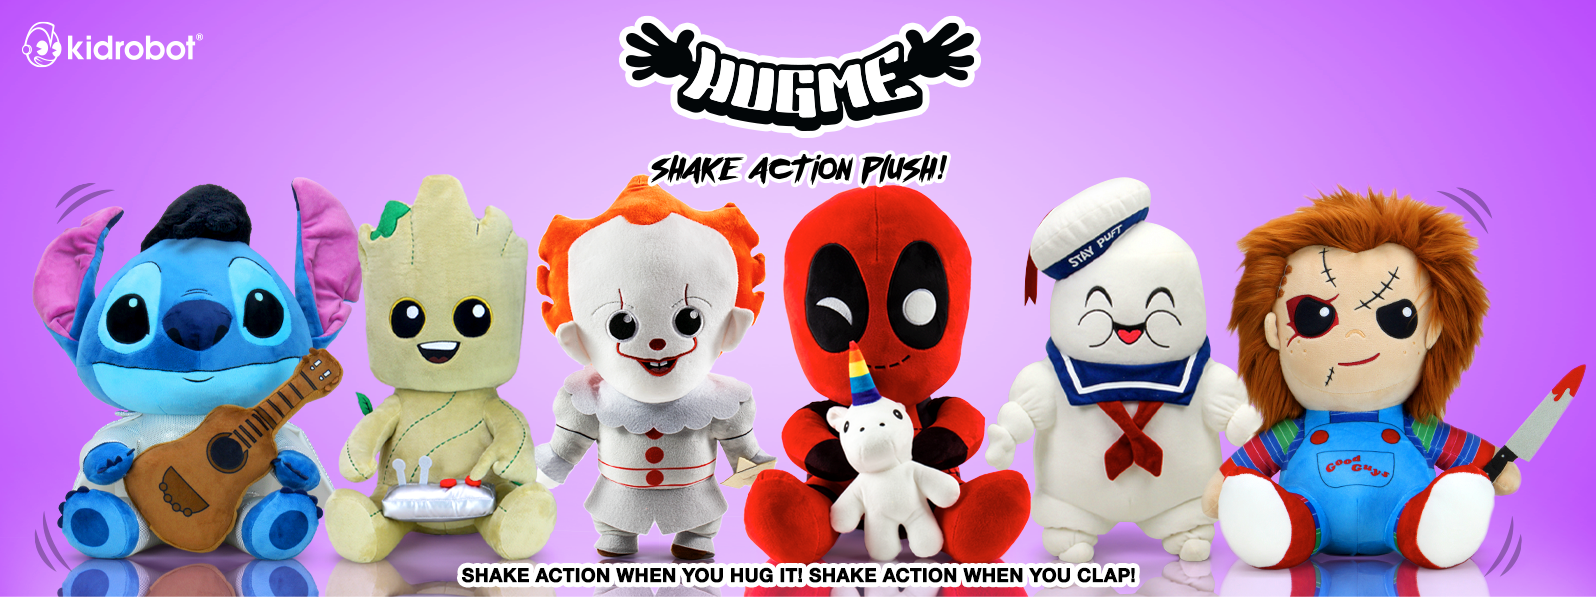 Kidrobot HugMe Plush Toys - Shake action when you hug it. Shake action when you clap.